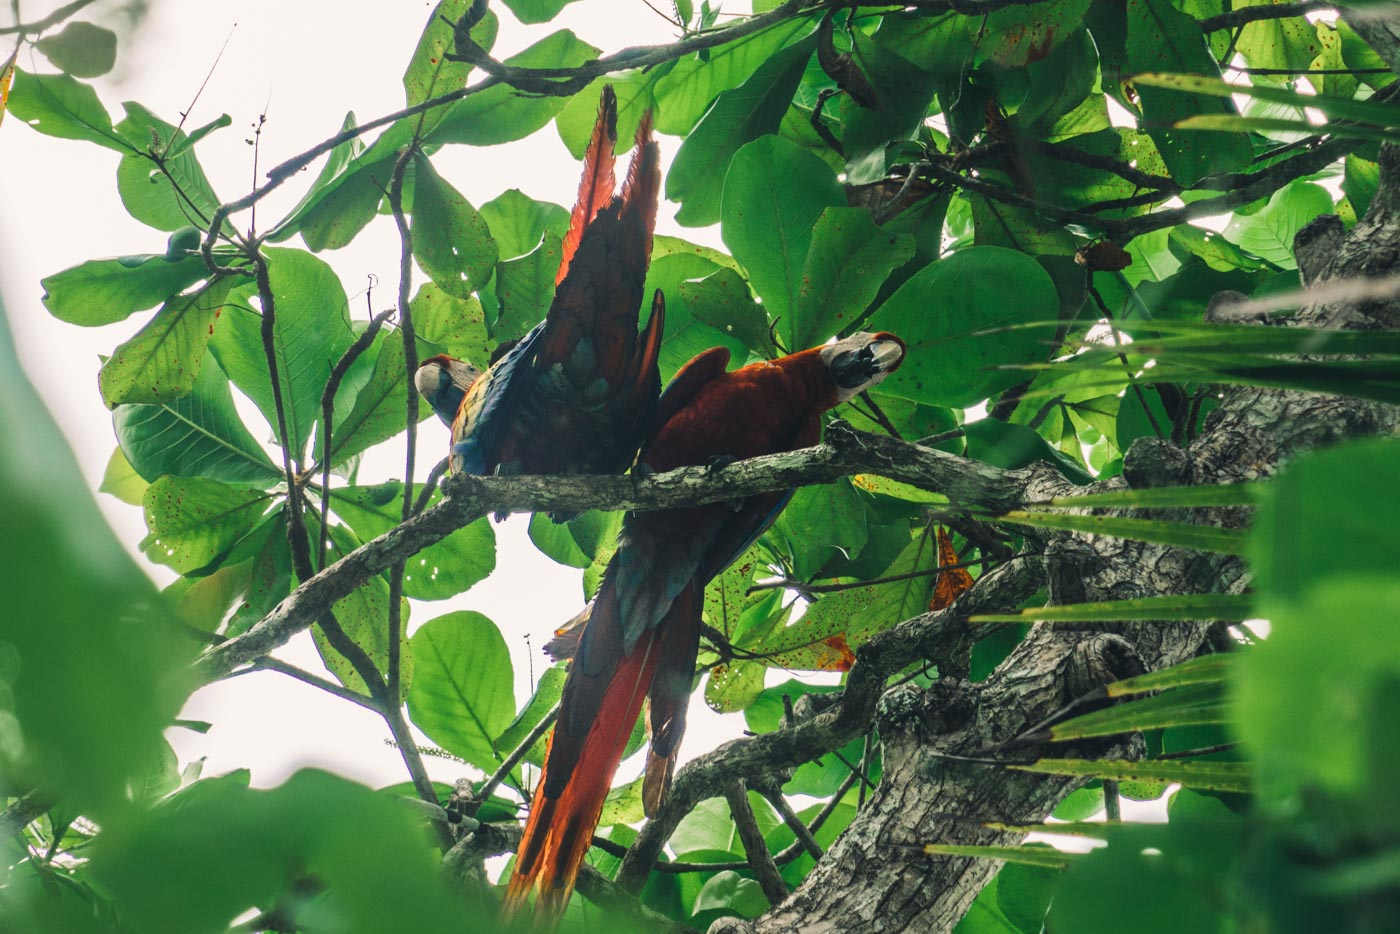 Visit Corcovado National Park: There are lots of parrots inside Corcovado National Park